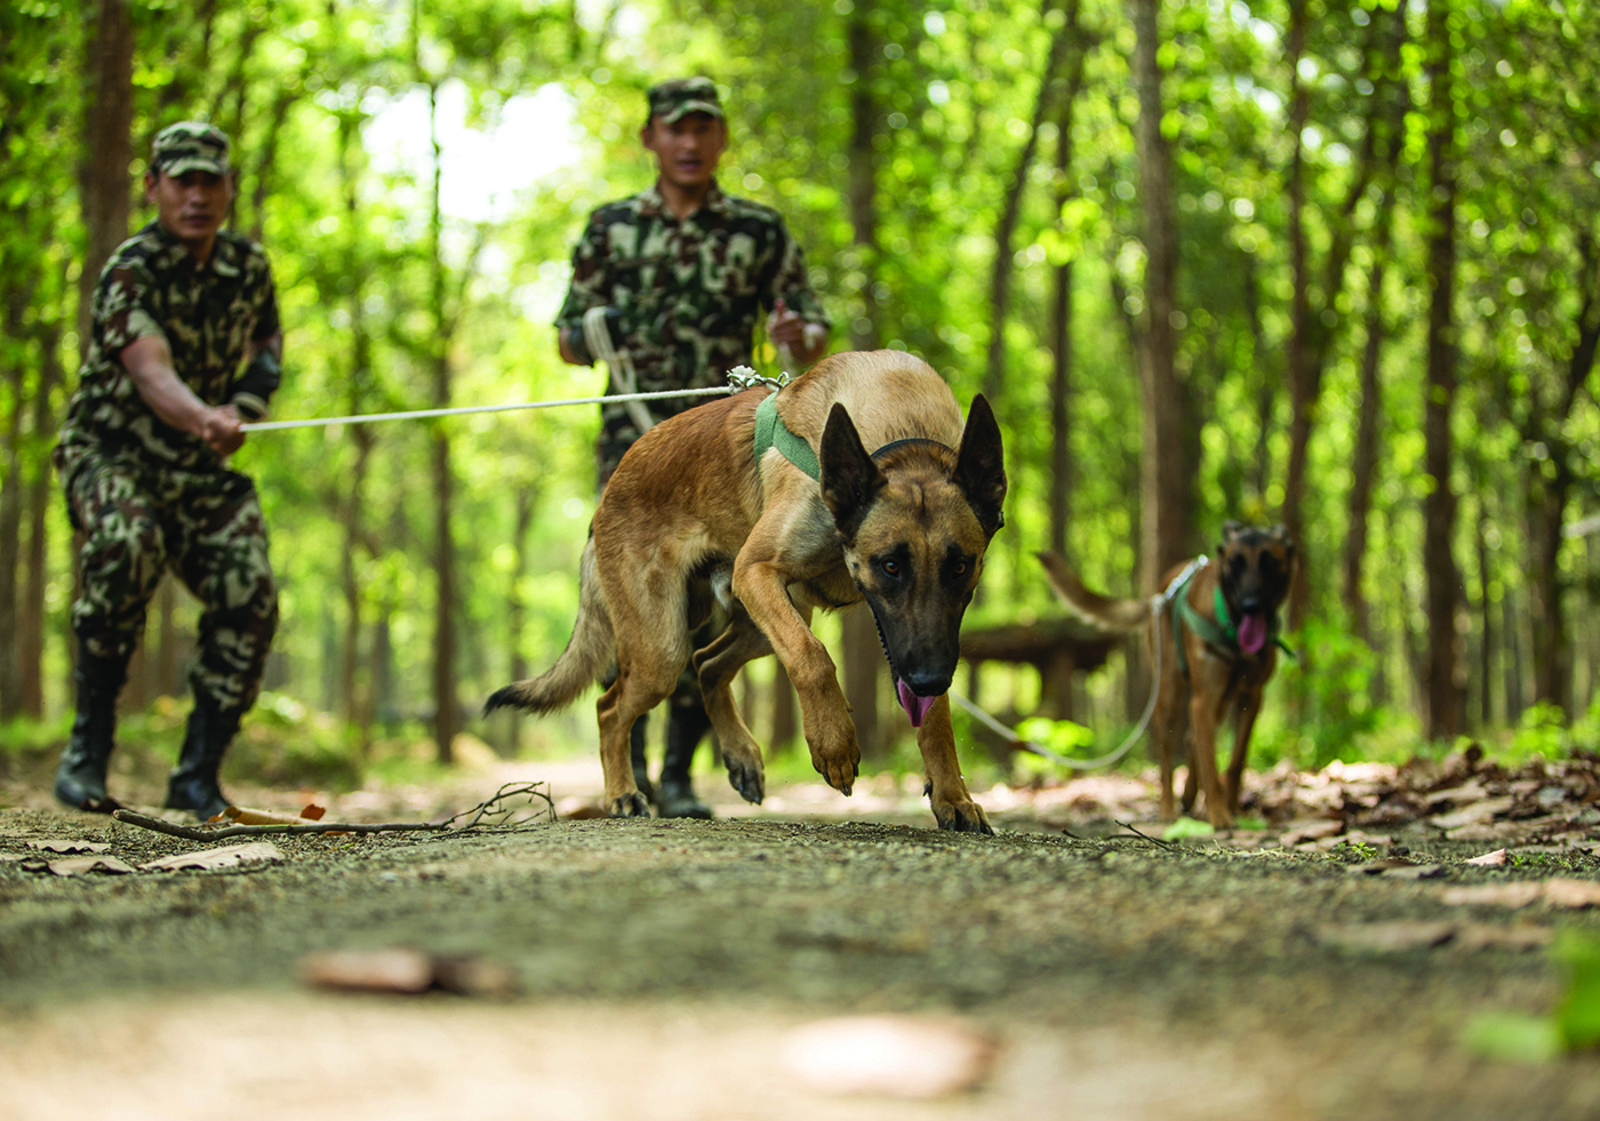 Wwfus nepal narendra shrestha sniffer dog photoproject %2858%29 optimized